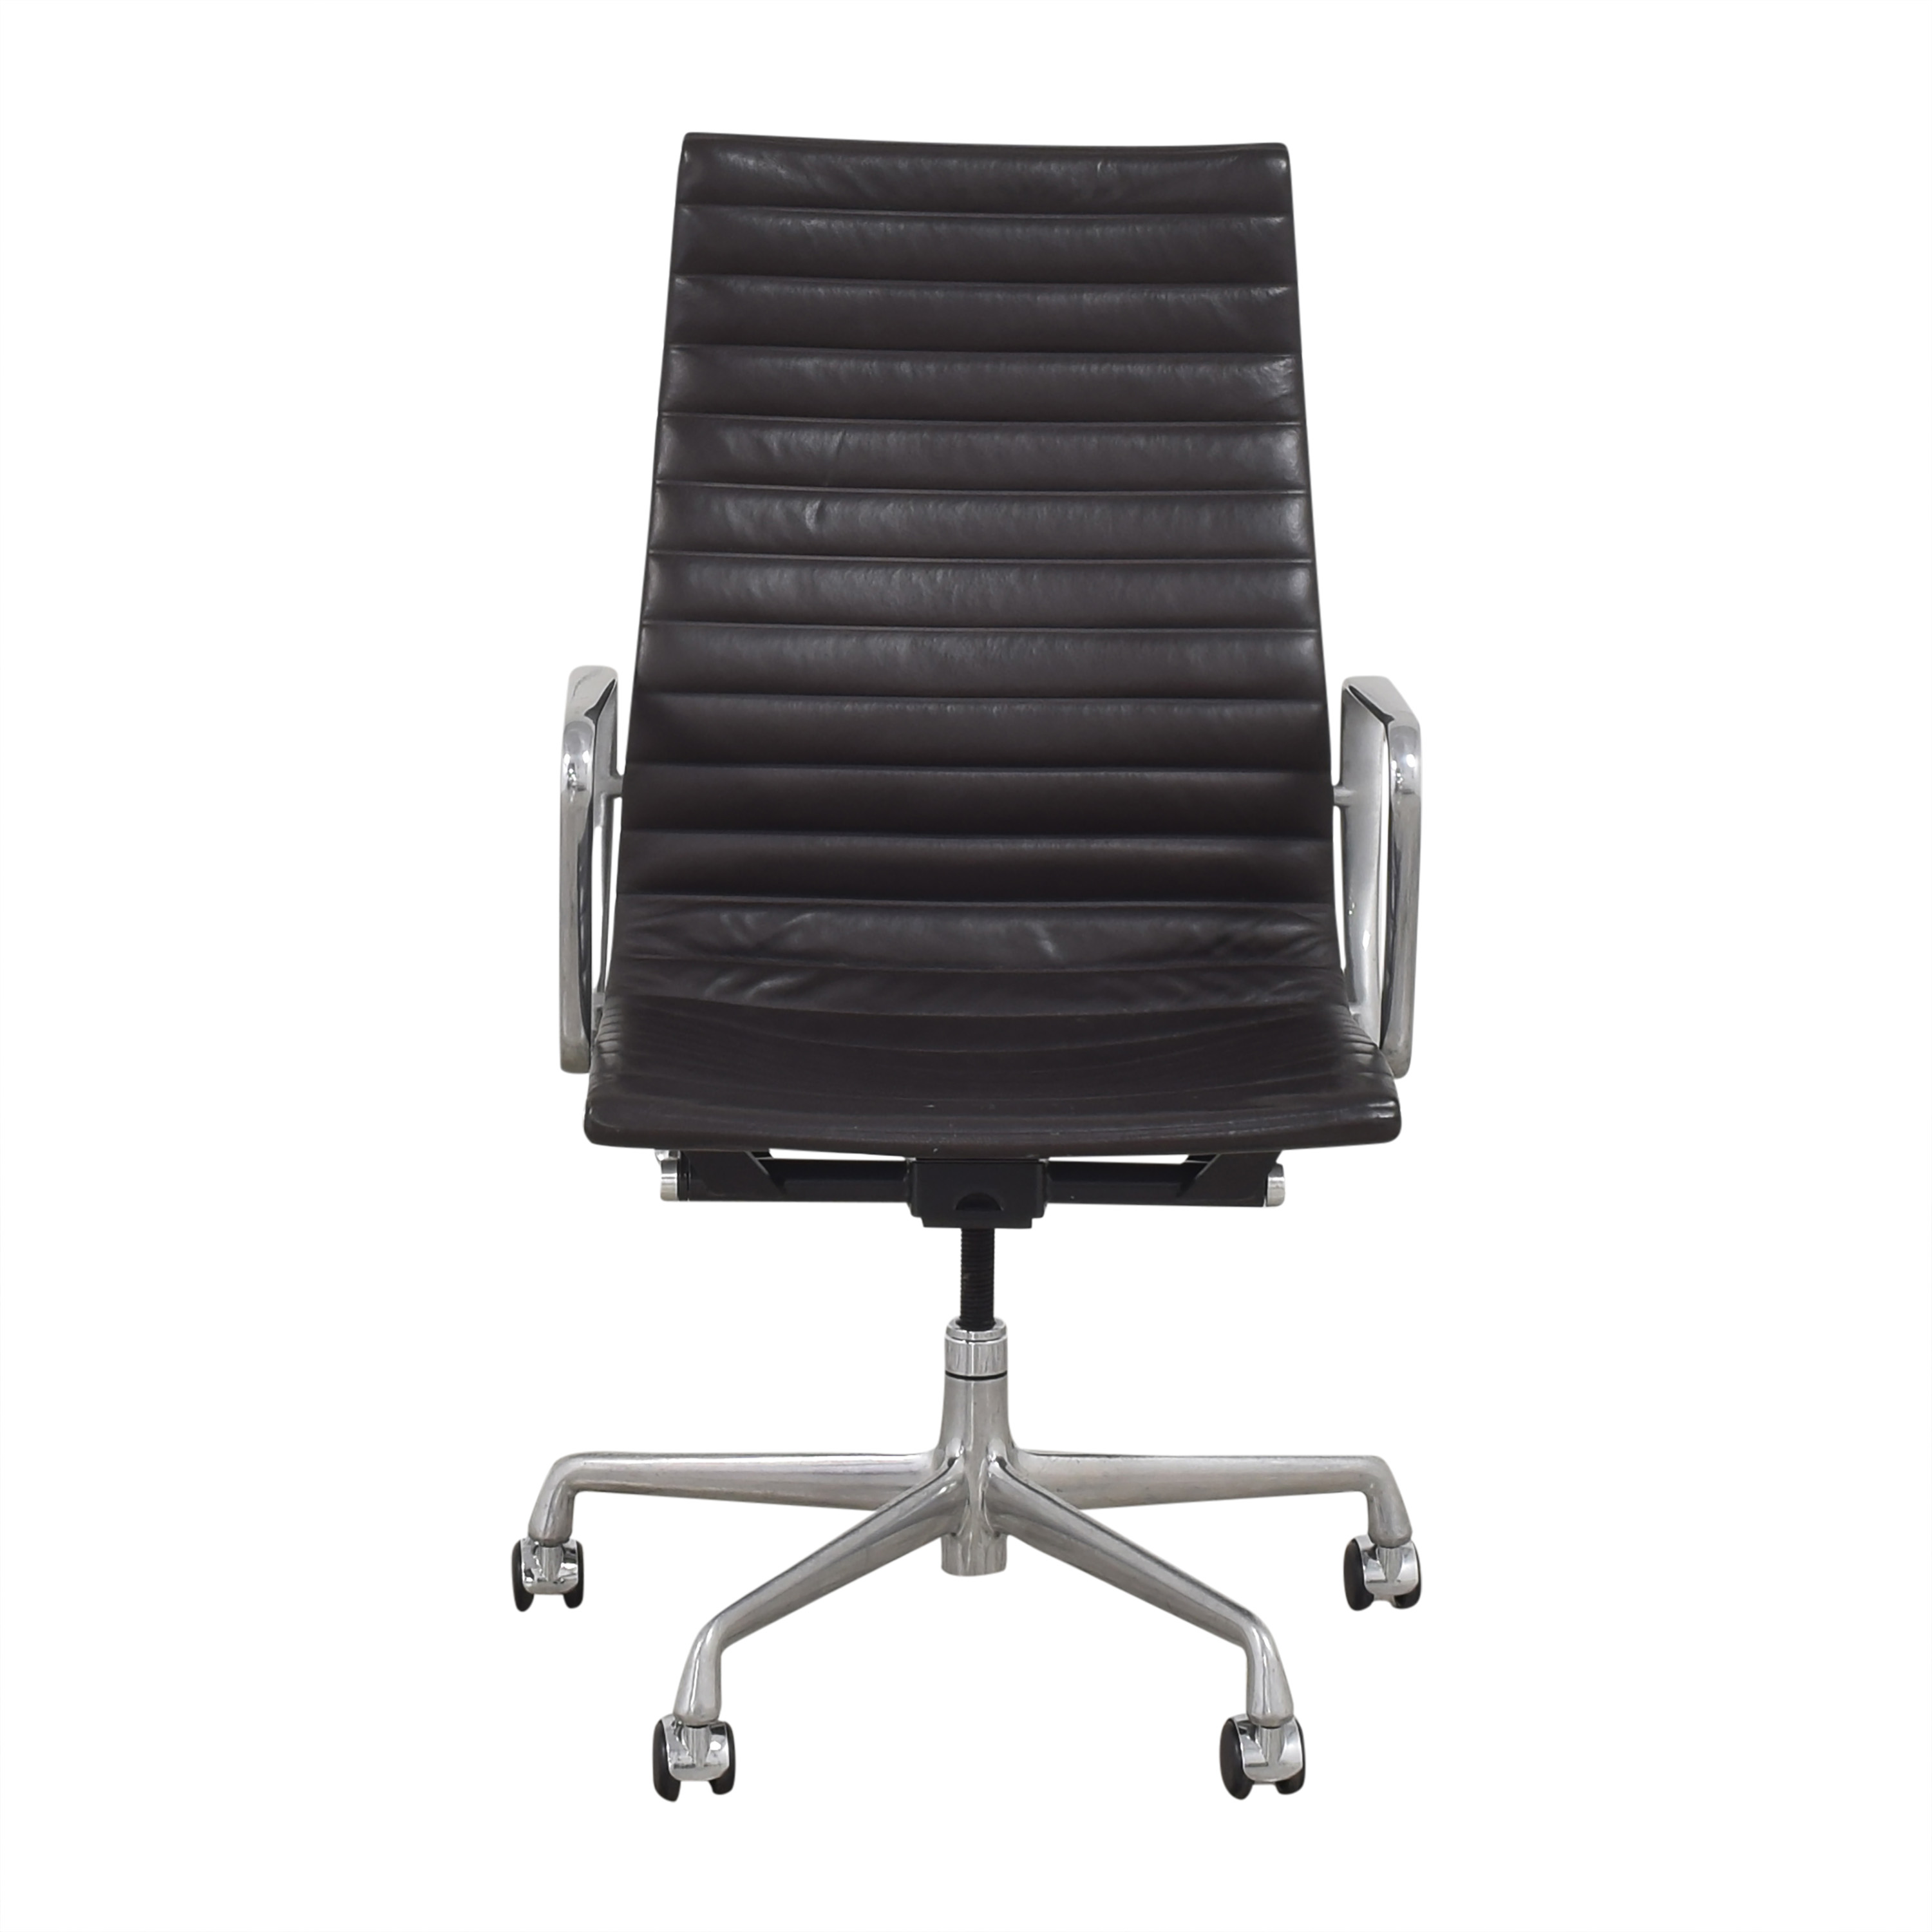 Eames Aluminum Group Eames Aluminium Group Executive Chair for sale